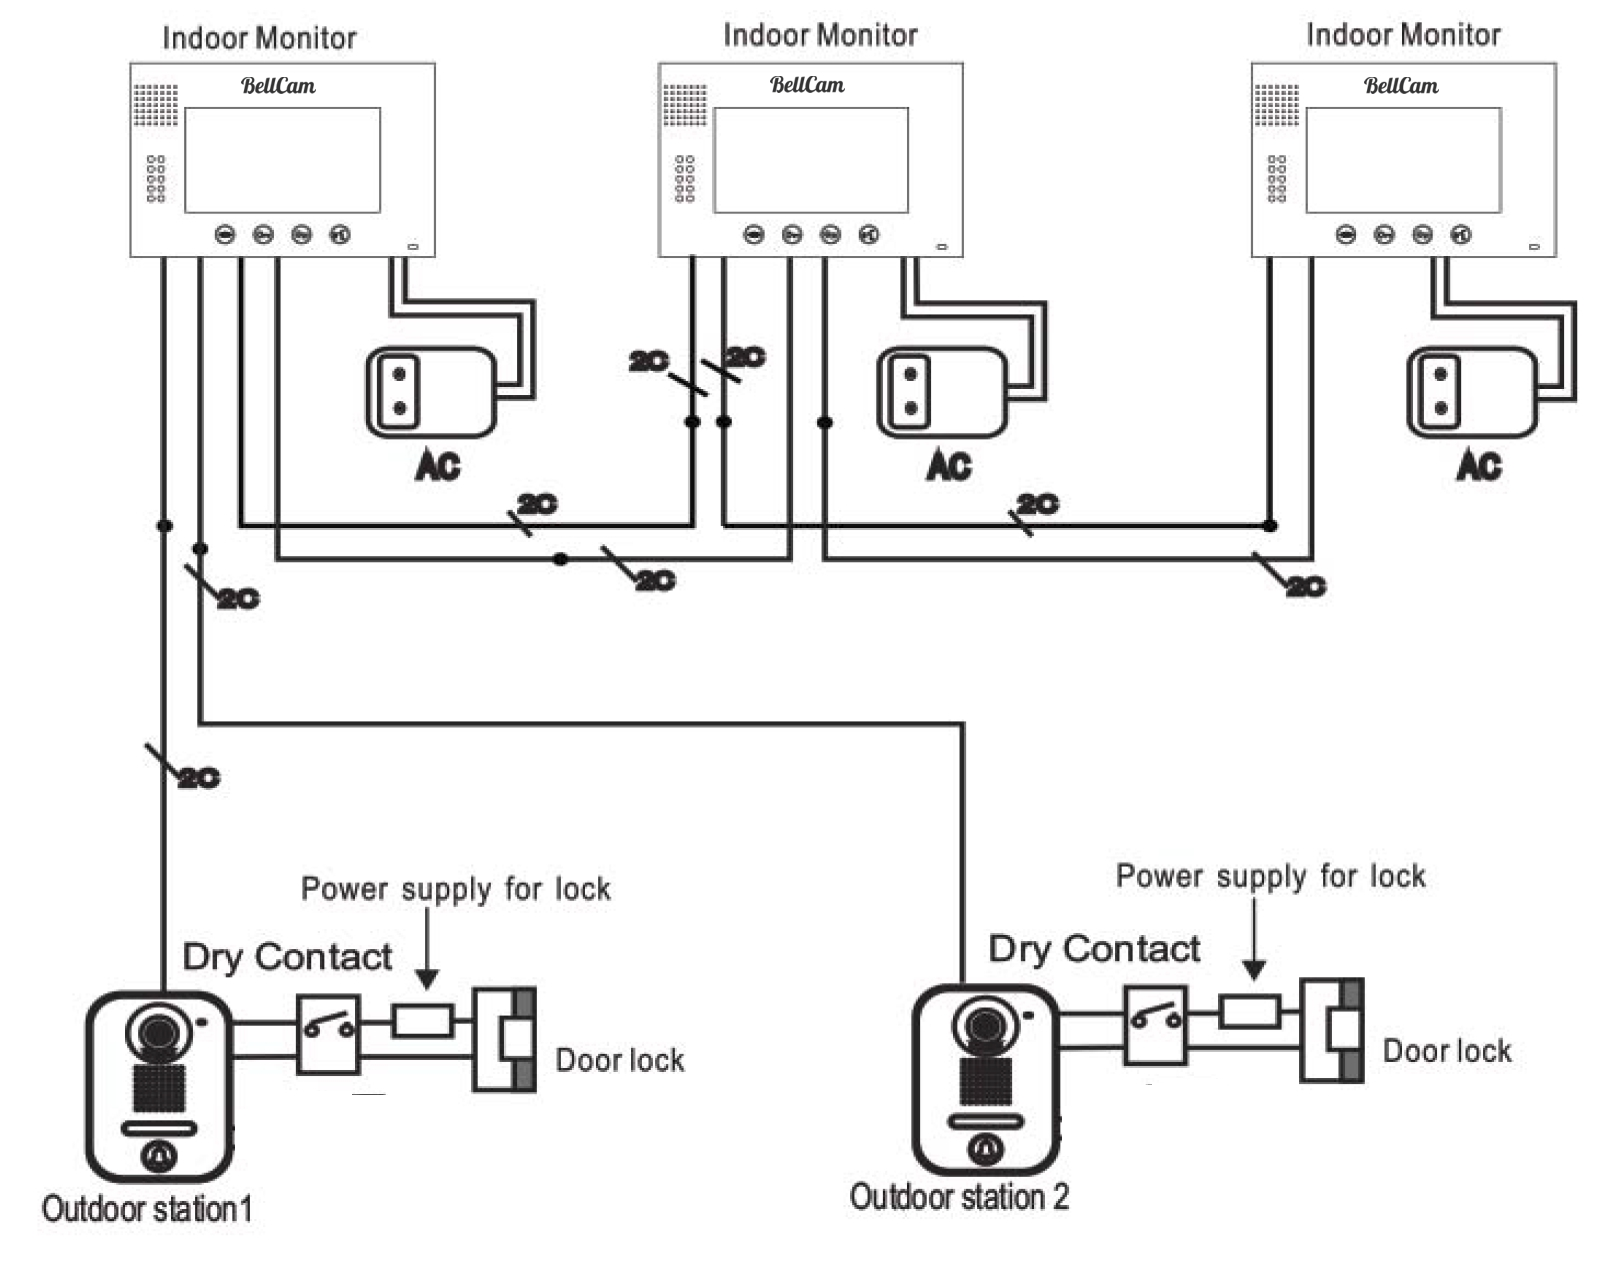 Memory systems welcome bellcam 2 wire video intercom system diagram cheapraybanclubmaster Images